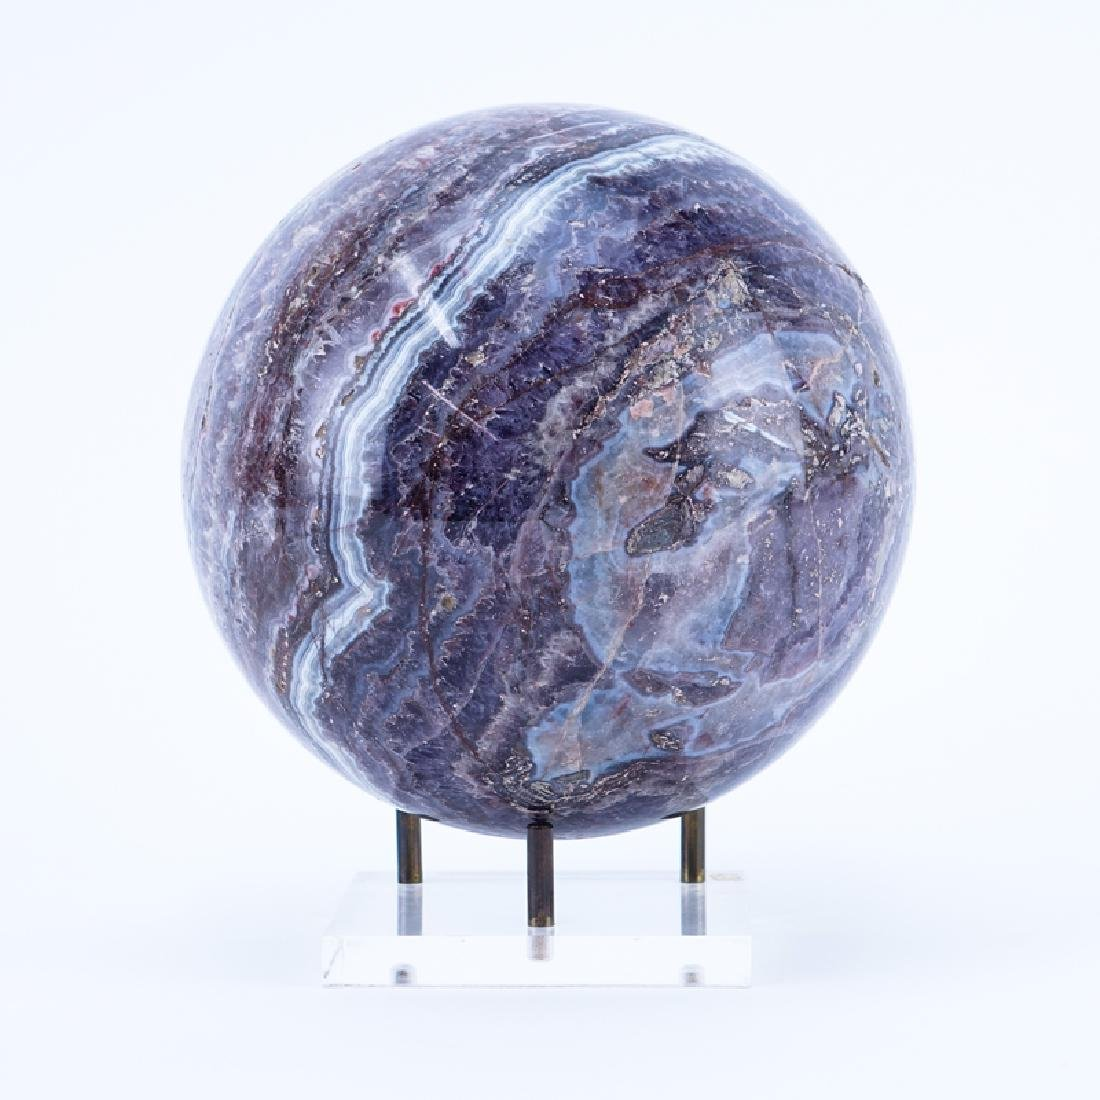 Modern Agate Sphere Mineral on Stand. Natural